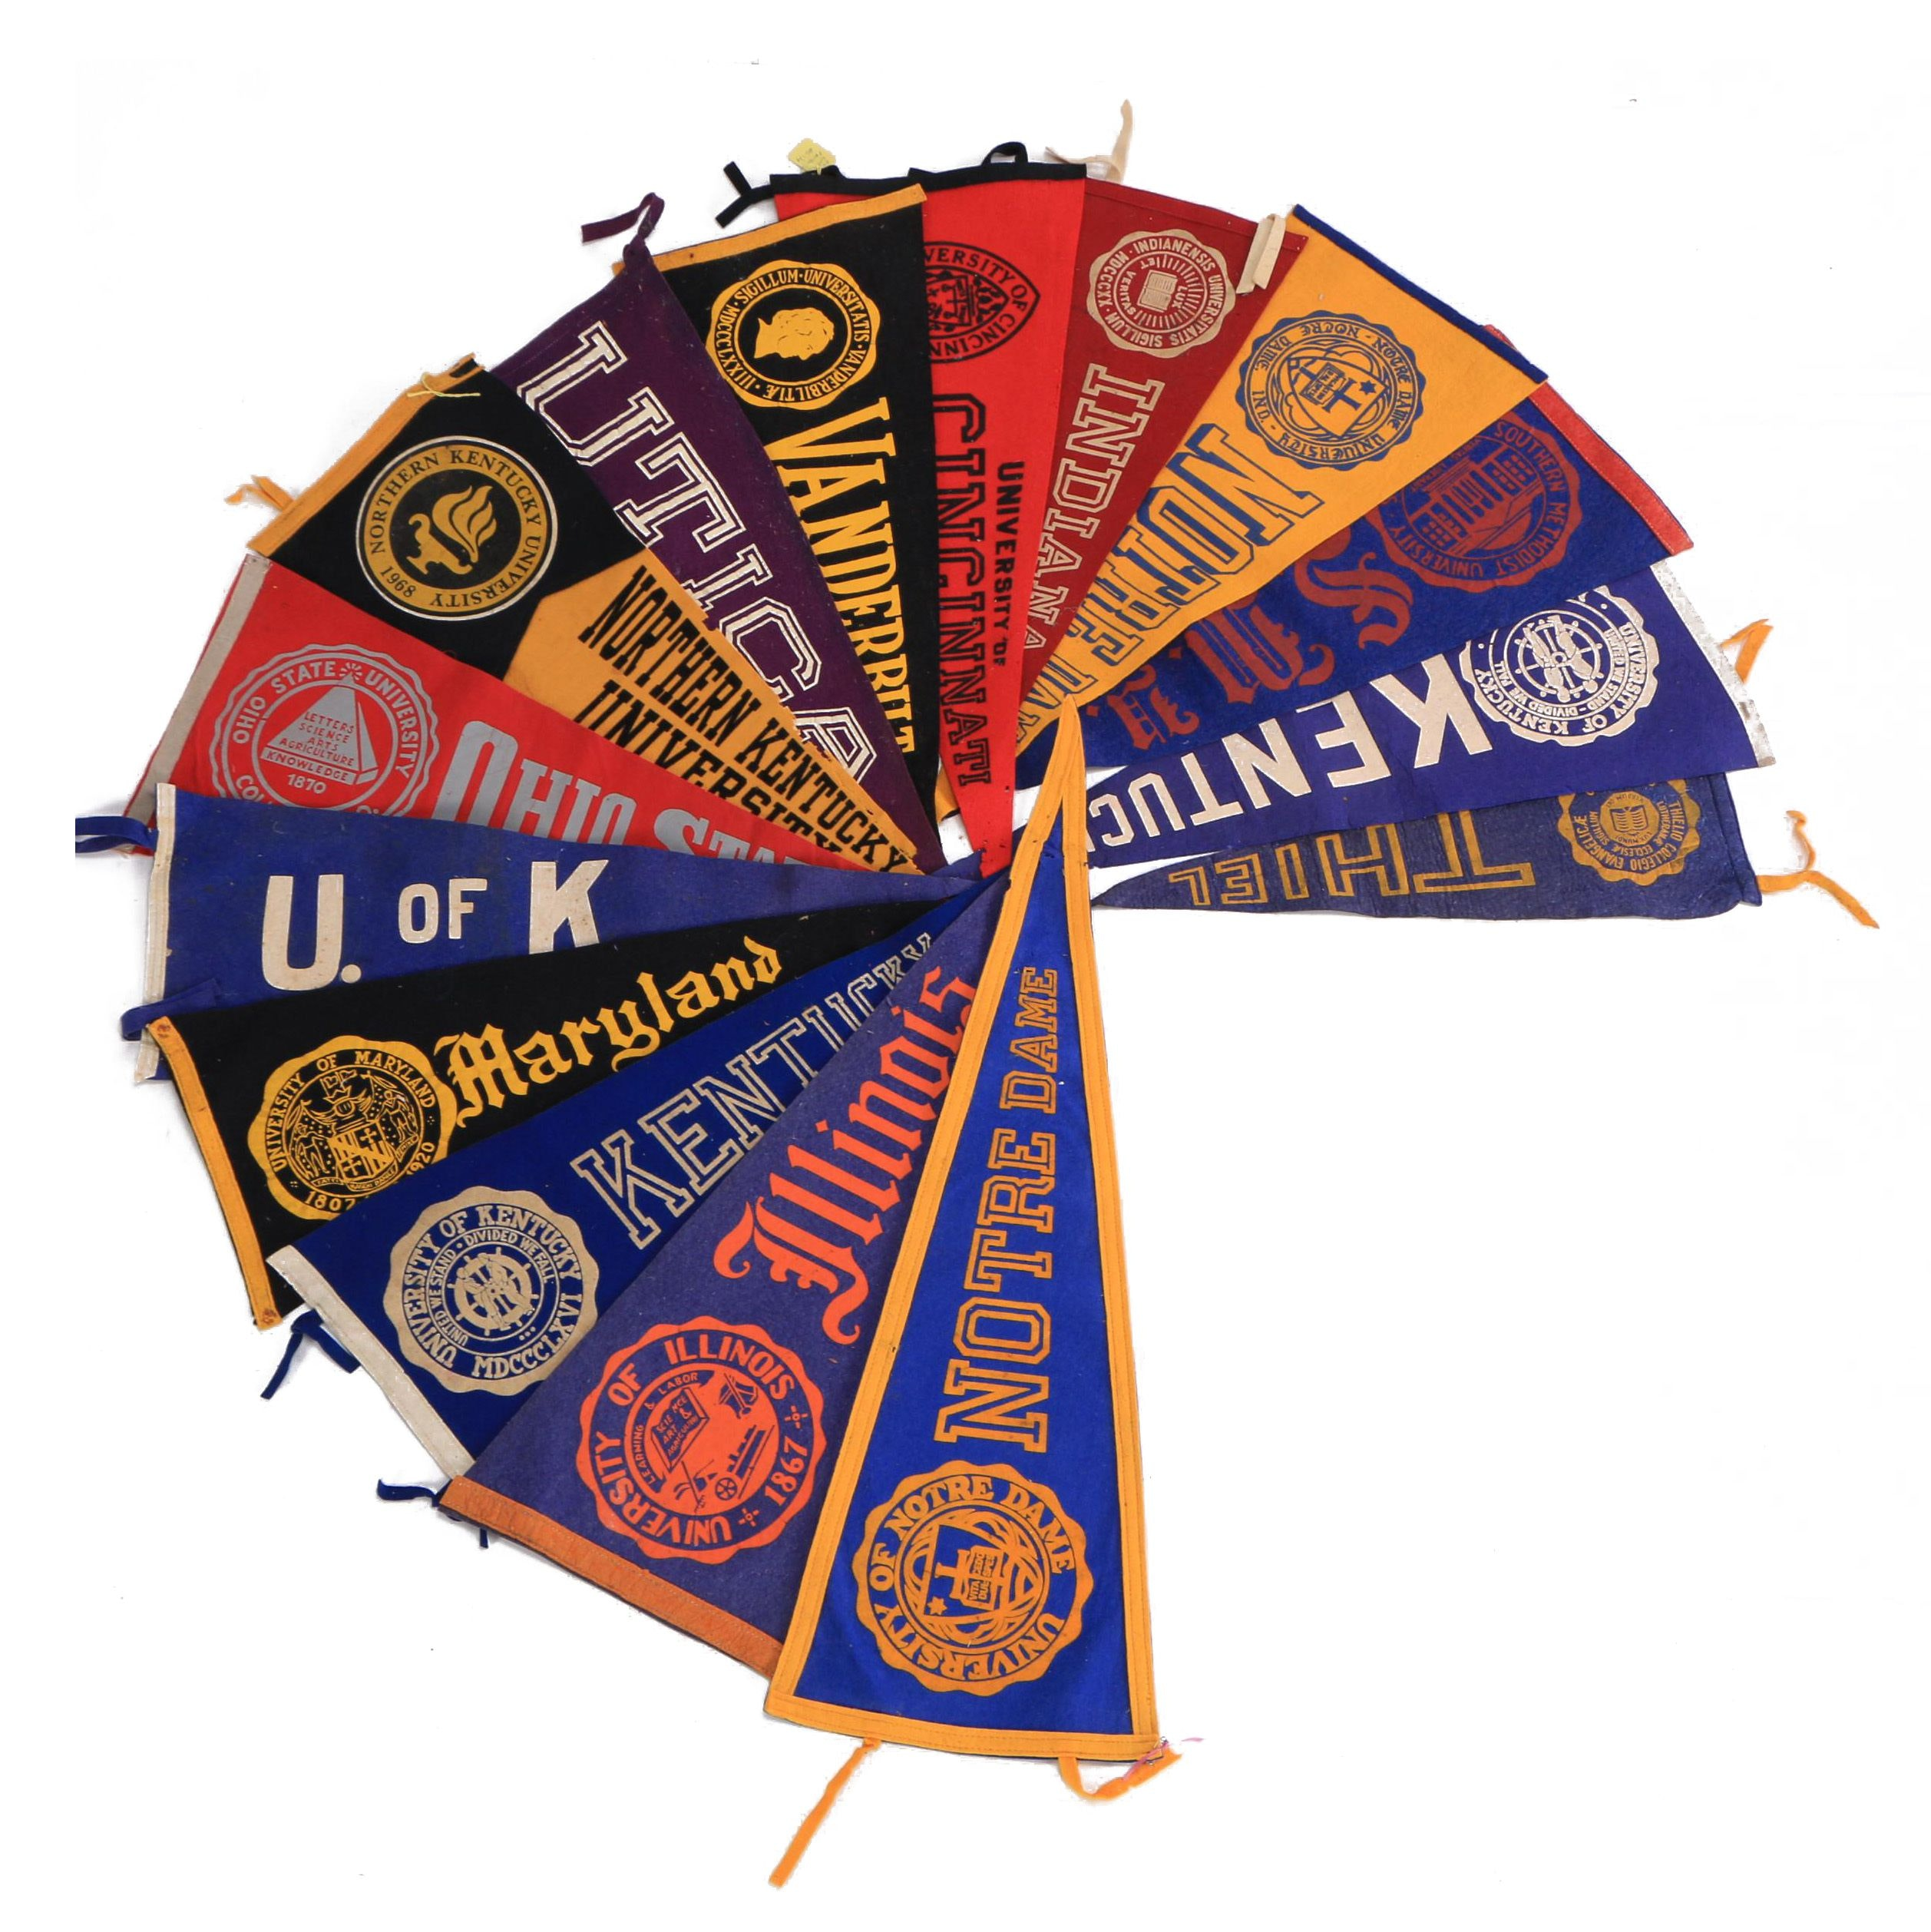 Vintage University of Kentucky, Notre Dame and Other College Pennants